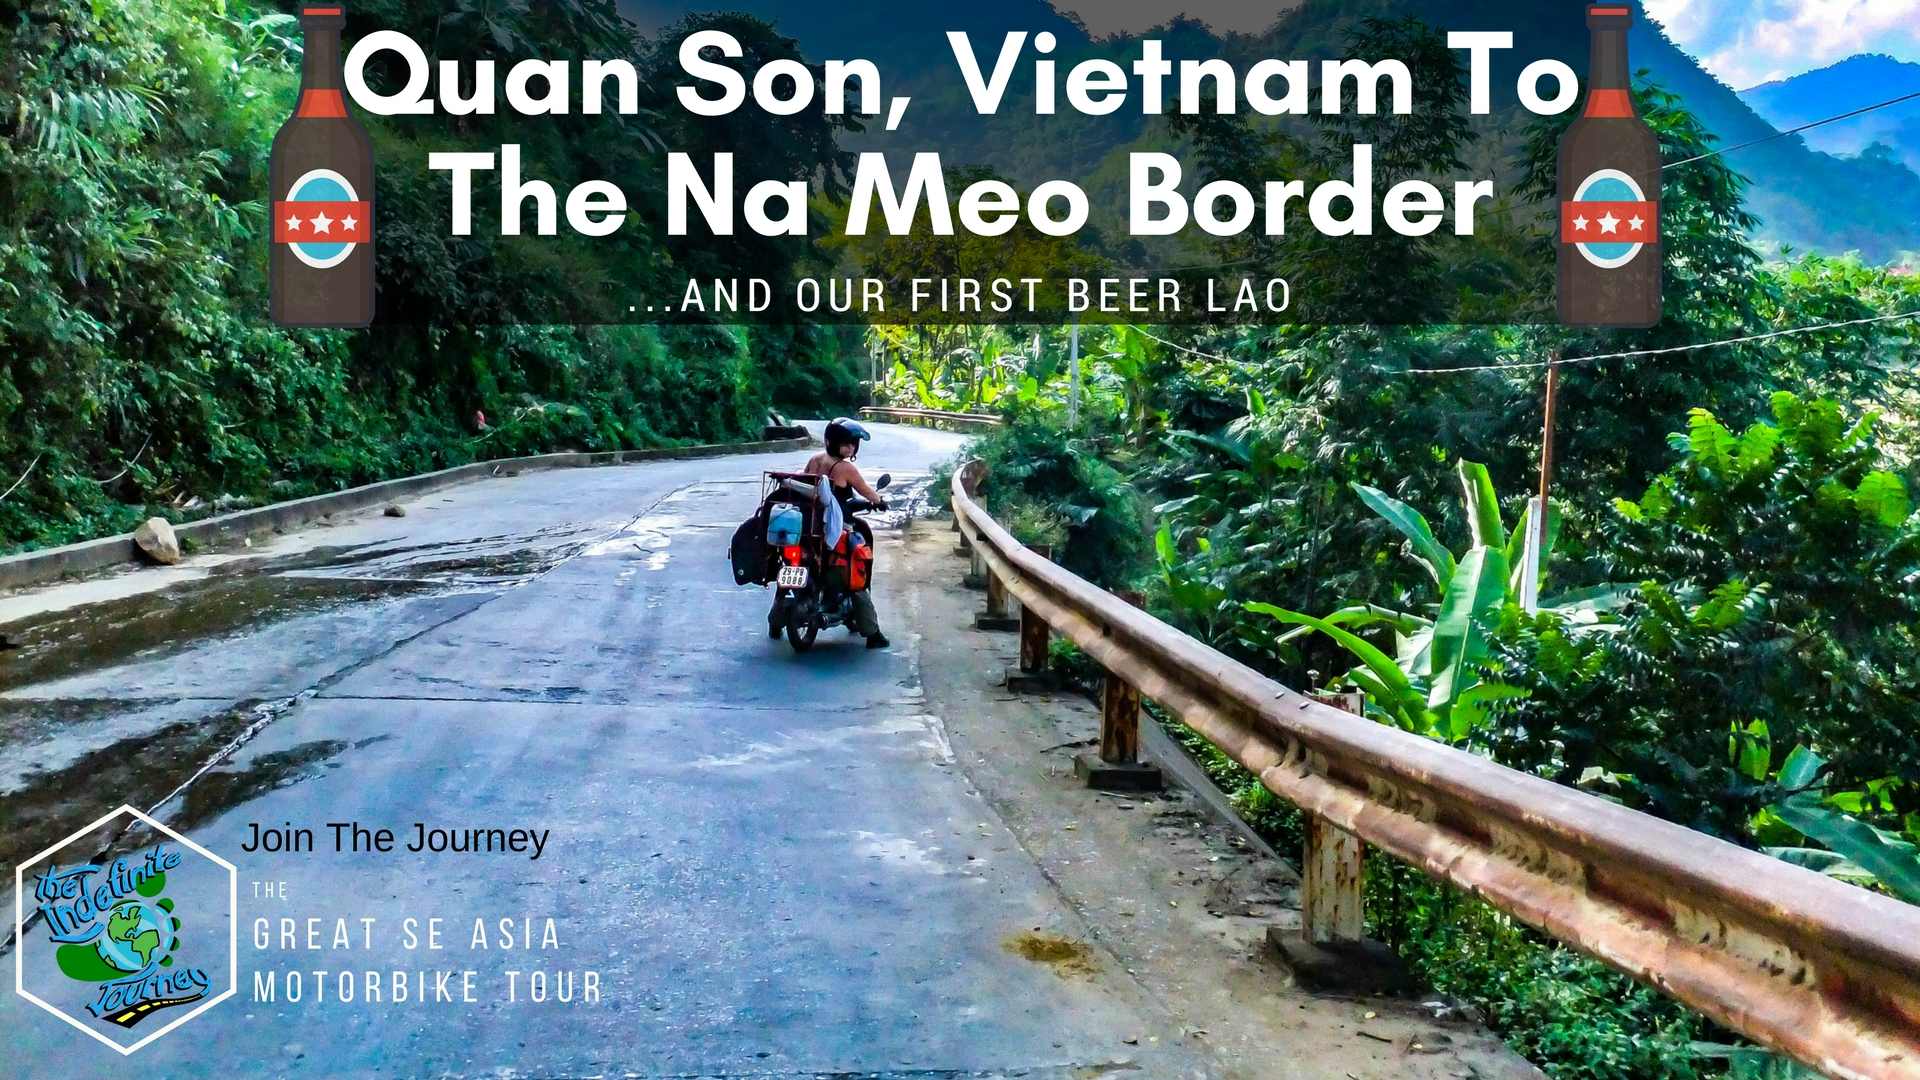 Quan Son, Vietnam To The Na Meo Border And Our First Beer Lao